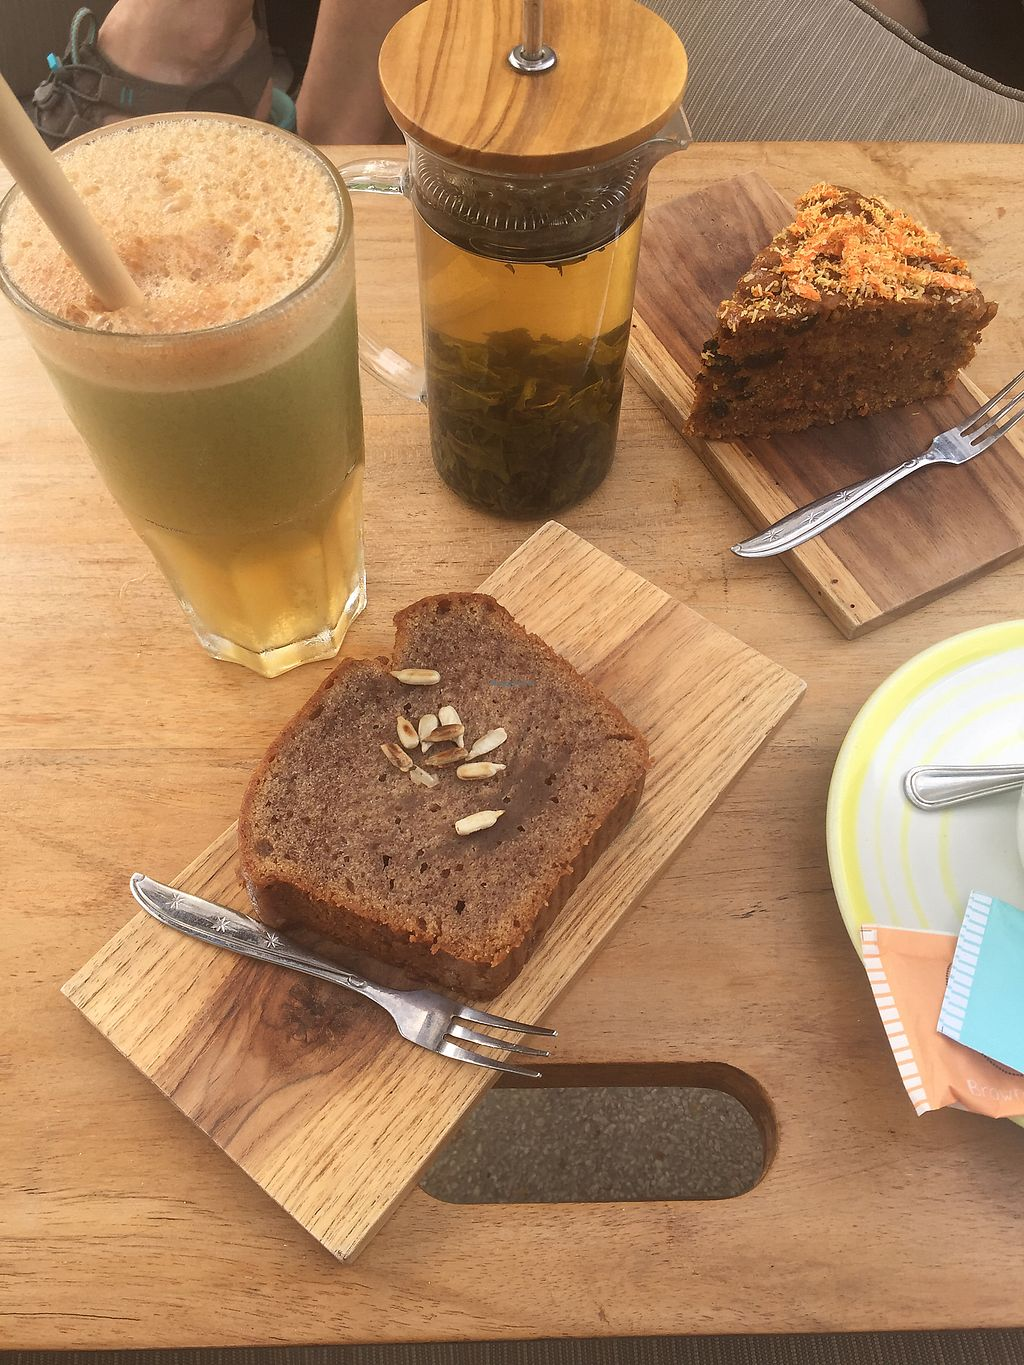 """Photo of Coffee & Thyme  by <a href=""""/members/profile/Laura_vegan"""">Laura_vegan</a> <br/>Banana bread and carrot cake <br/> November 8, 2017  - <a href='/contact/abuse/image/97981/323271'>Report</a>"""